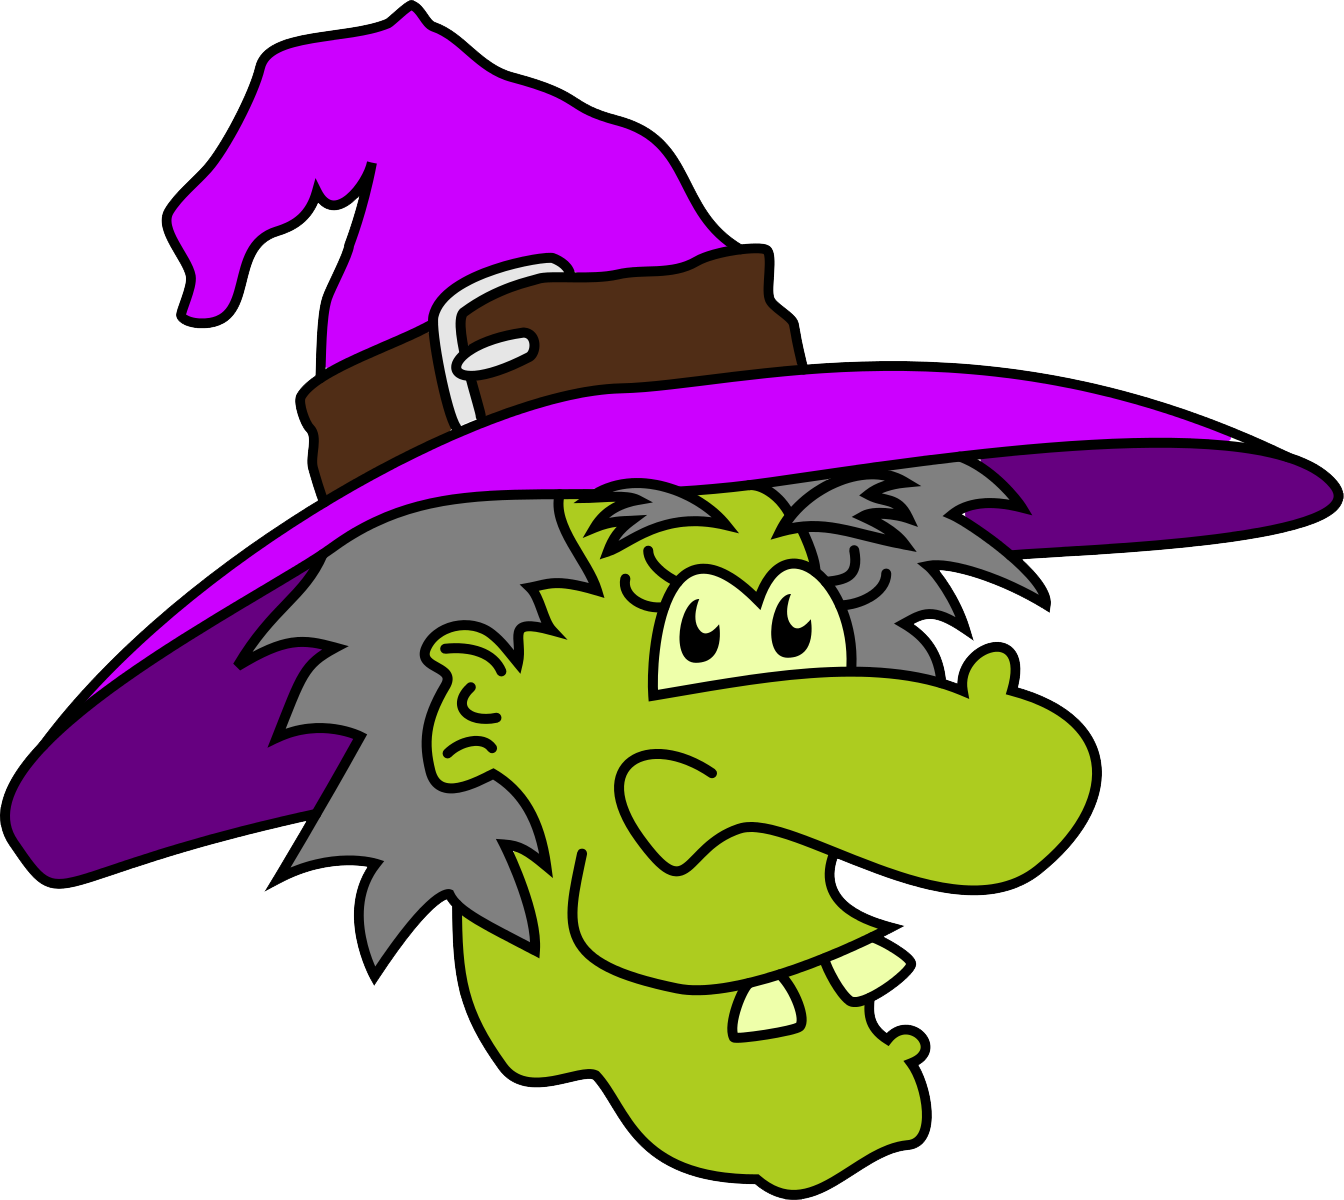 Witch face png. Free download mart